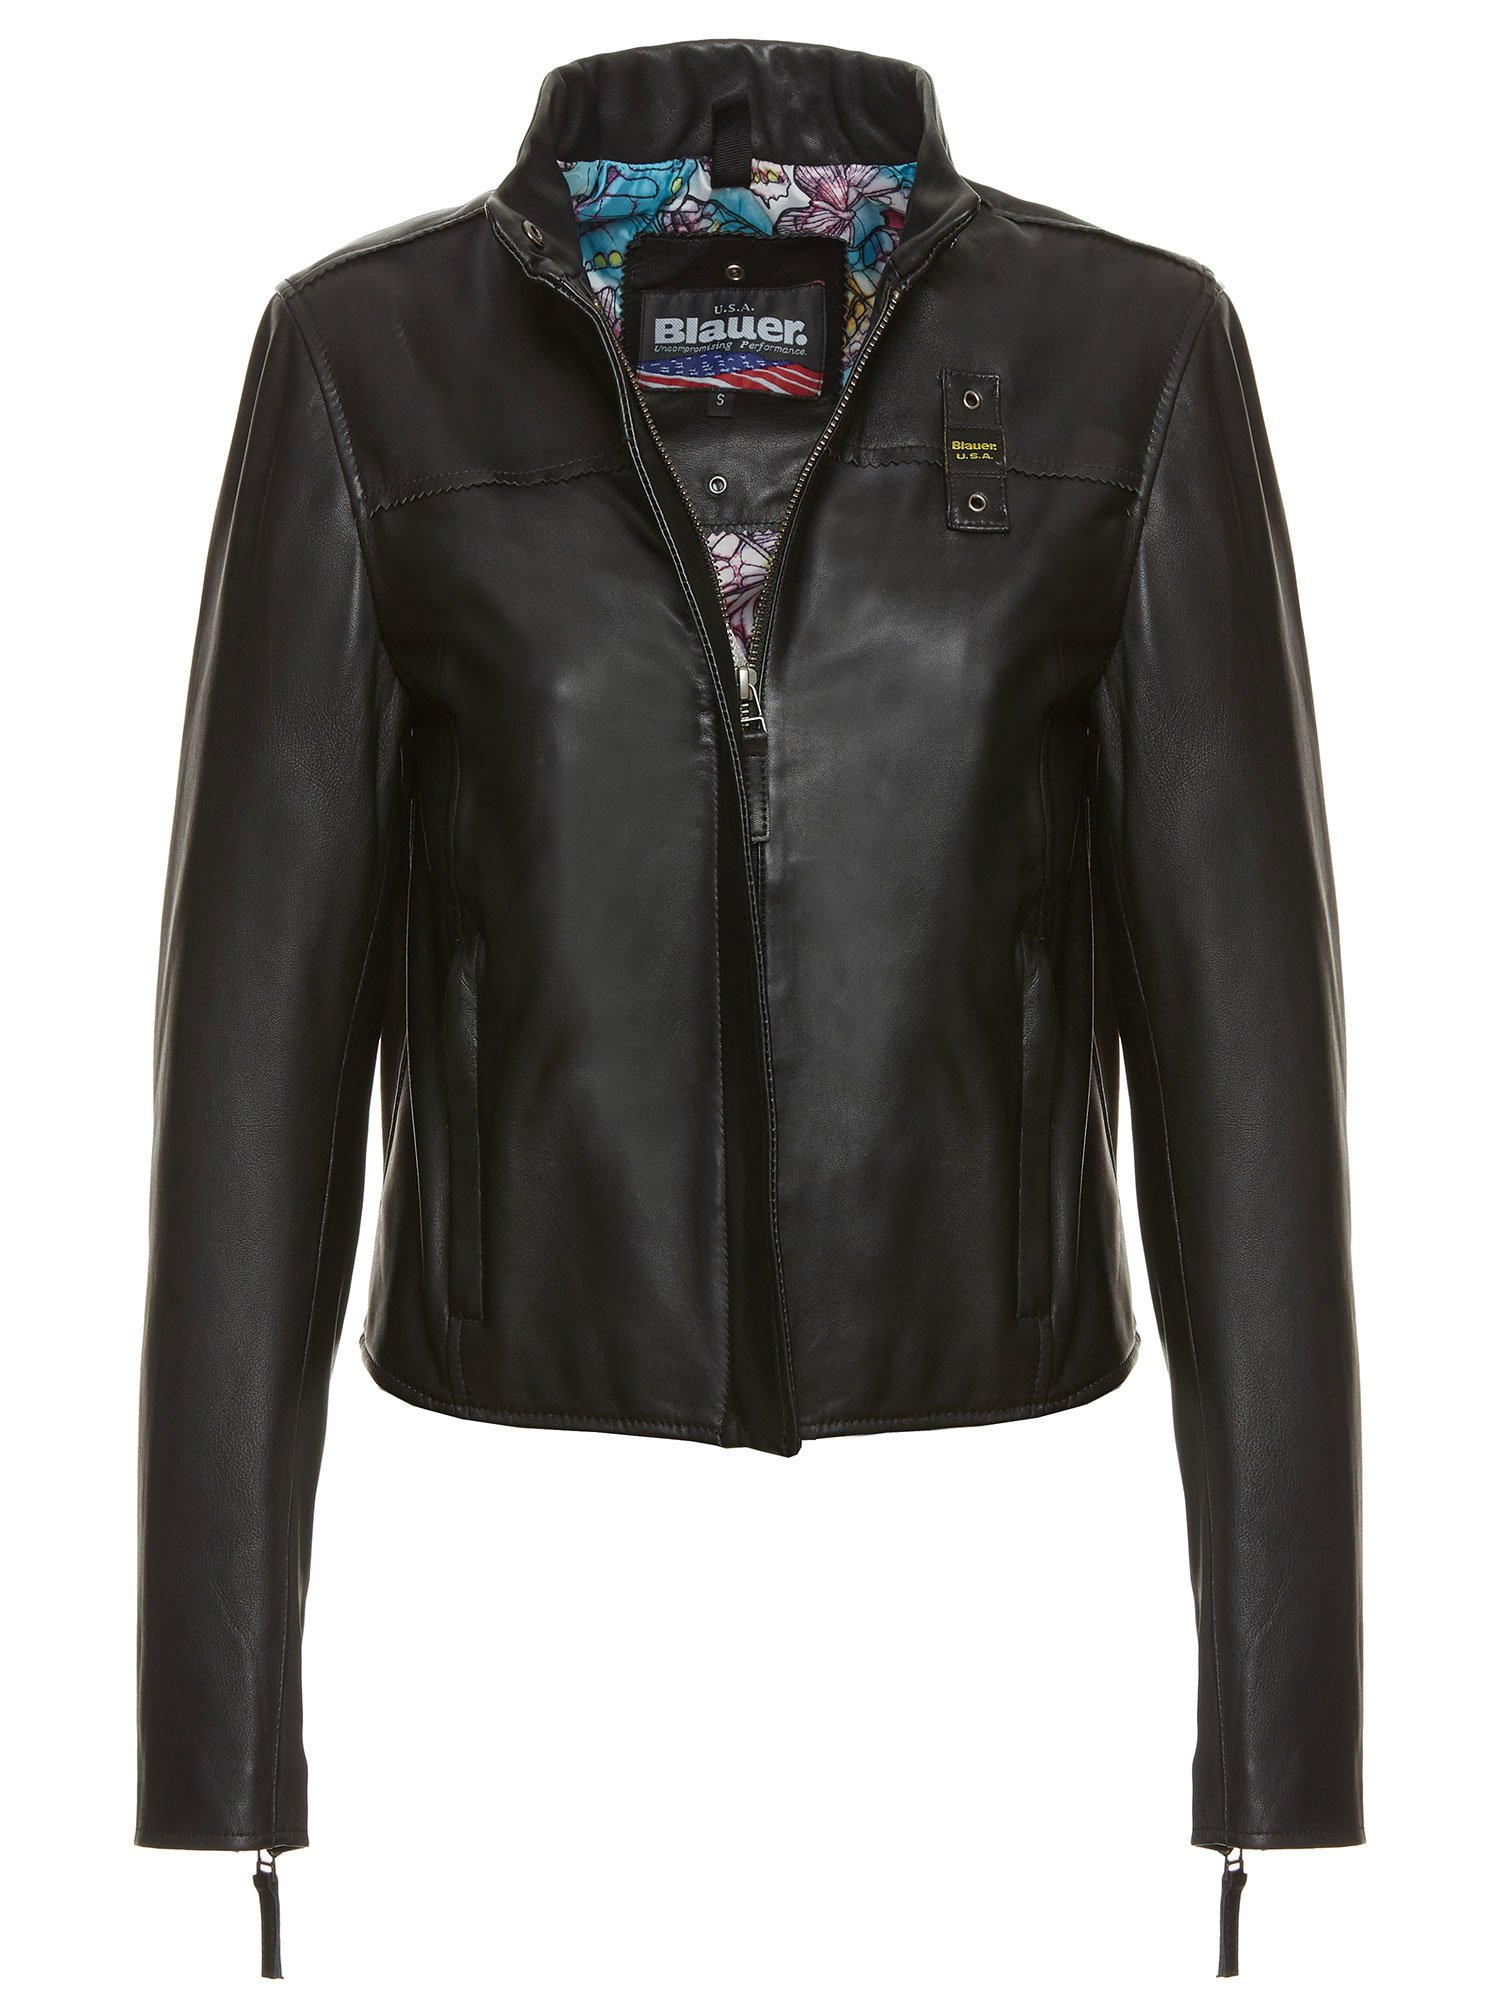 GIACCA BIKERS IN PELLE  SAMANTHA - Blauer